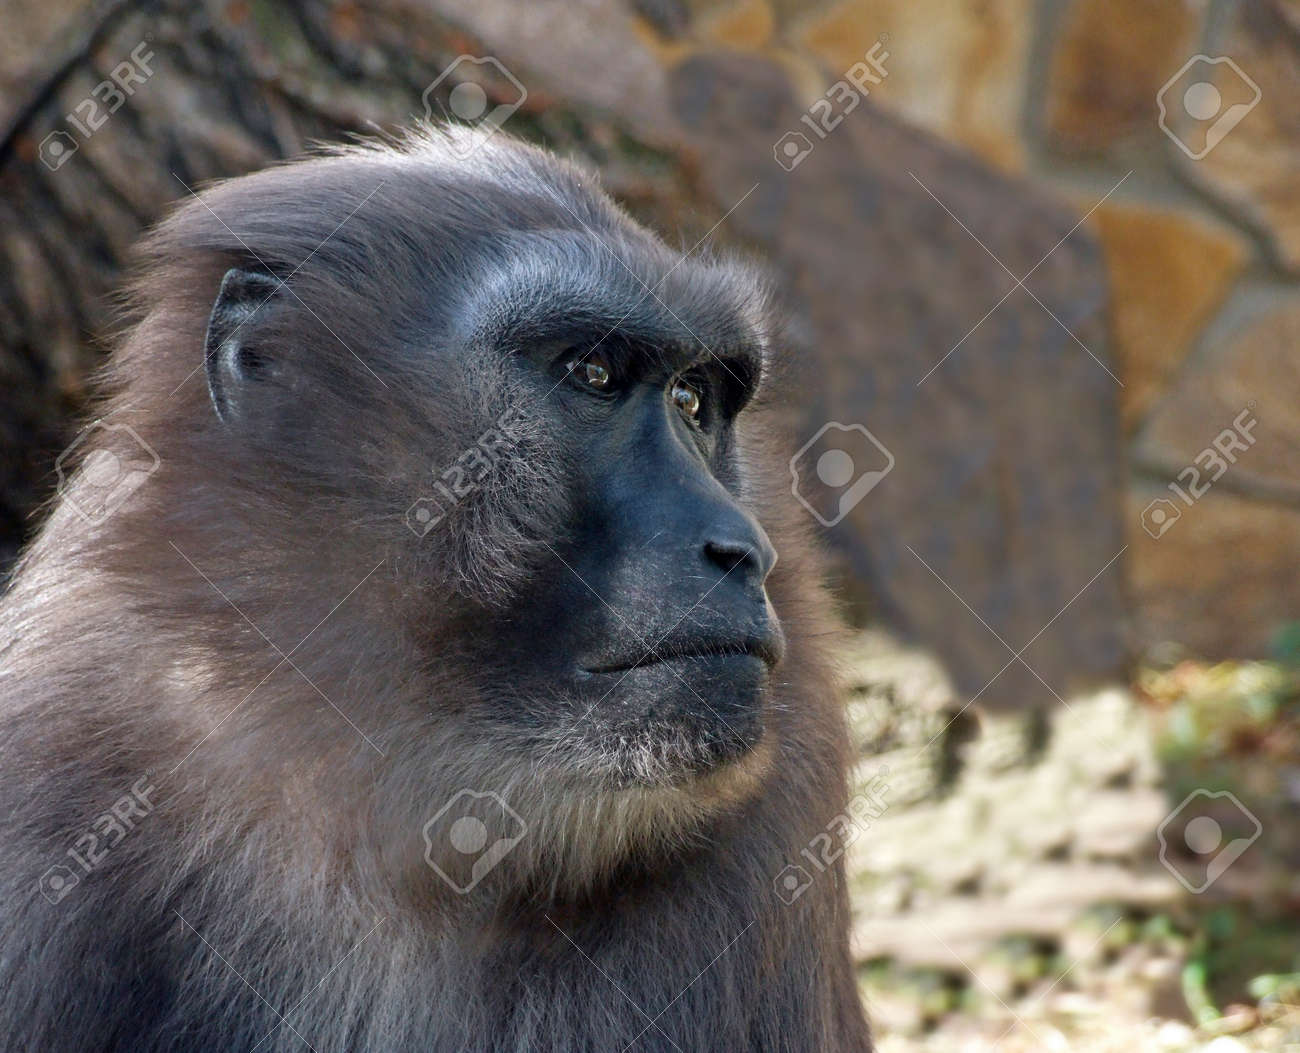 a headshot of a celebes crested black macaque or the black ape